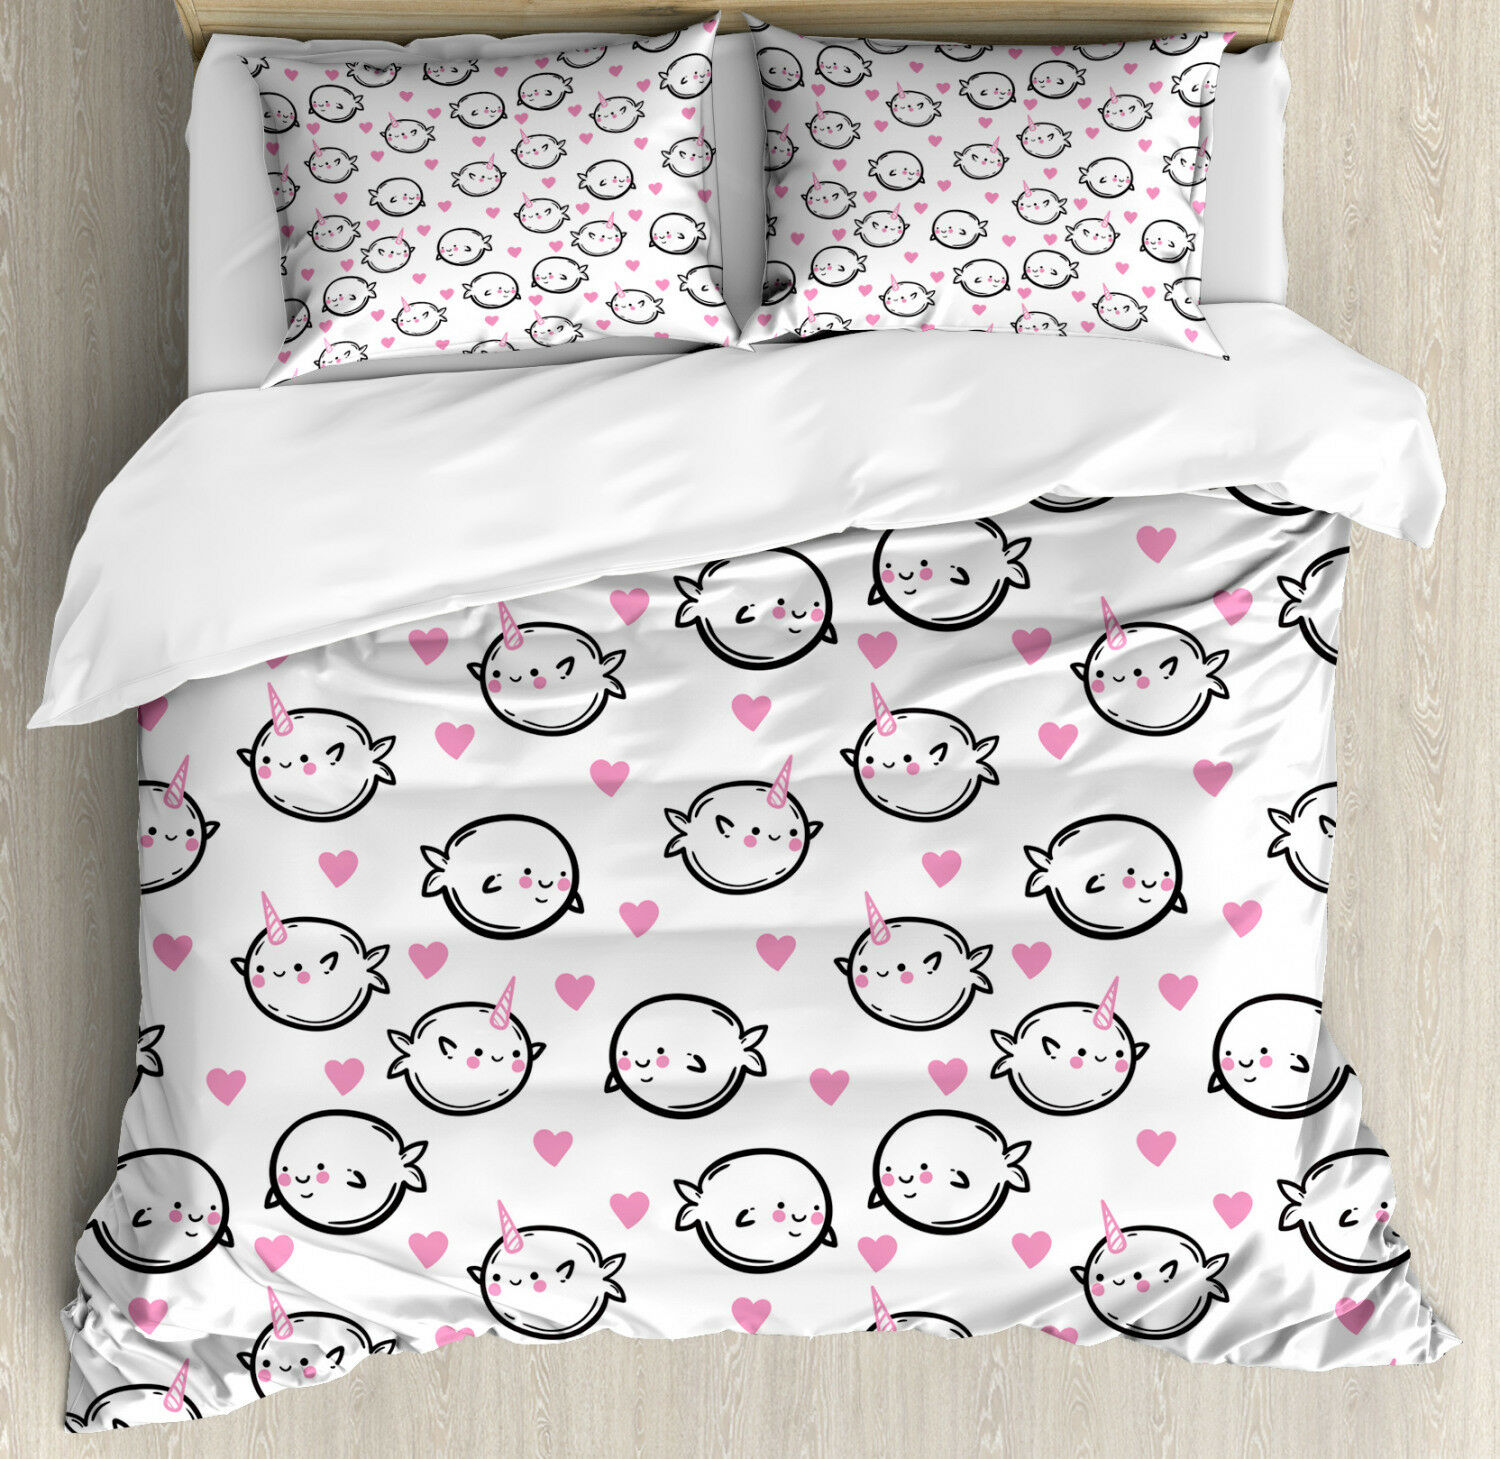 Narwhal Duvet Cover Set with Pillow Shams Doodle Style Whales Print